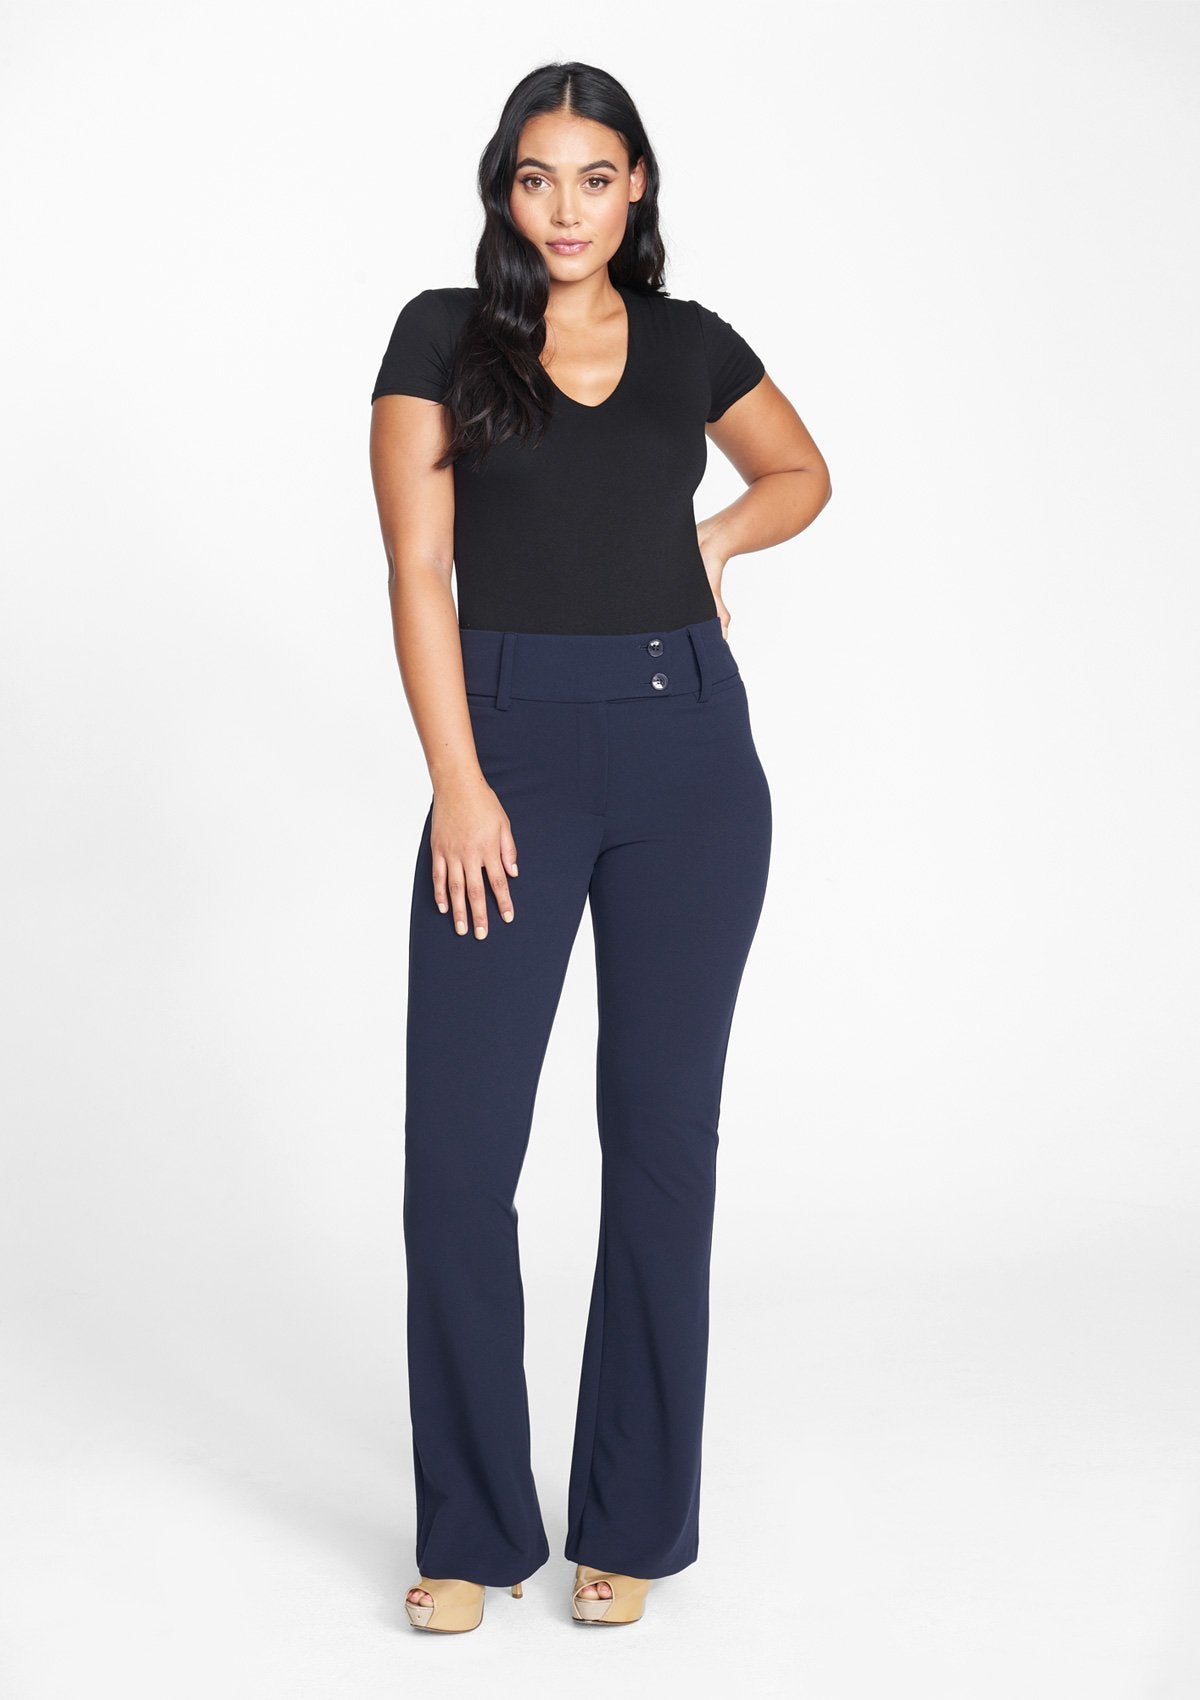 Alloy Apparel Tall Stanton Flare Pants for Women in Navy Size 12 length 37   Polyester